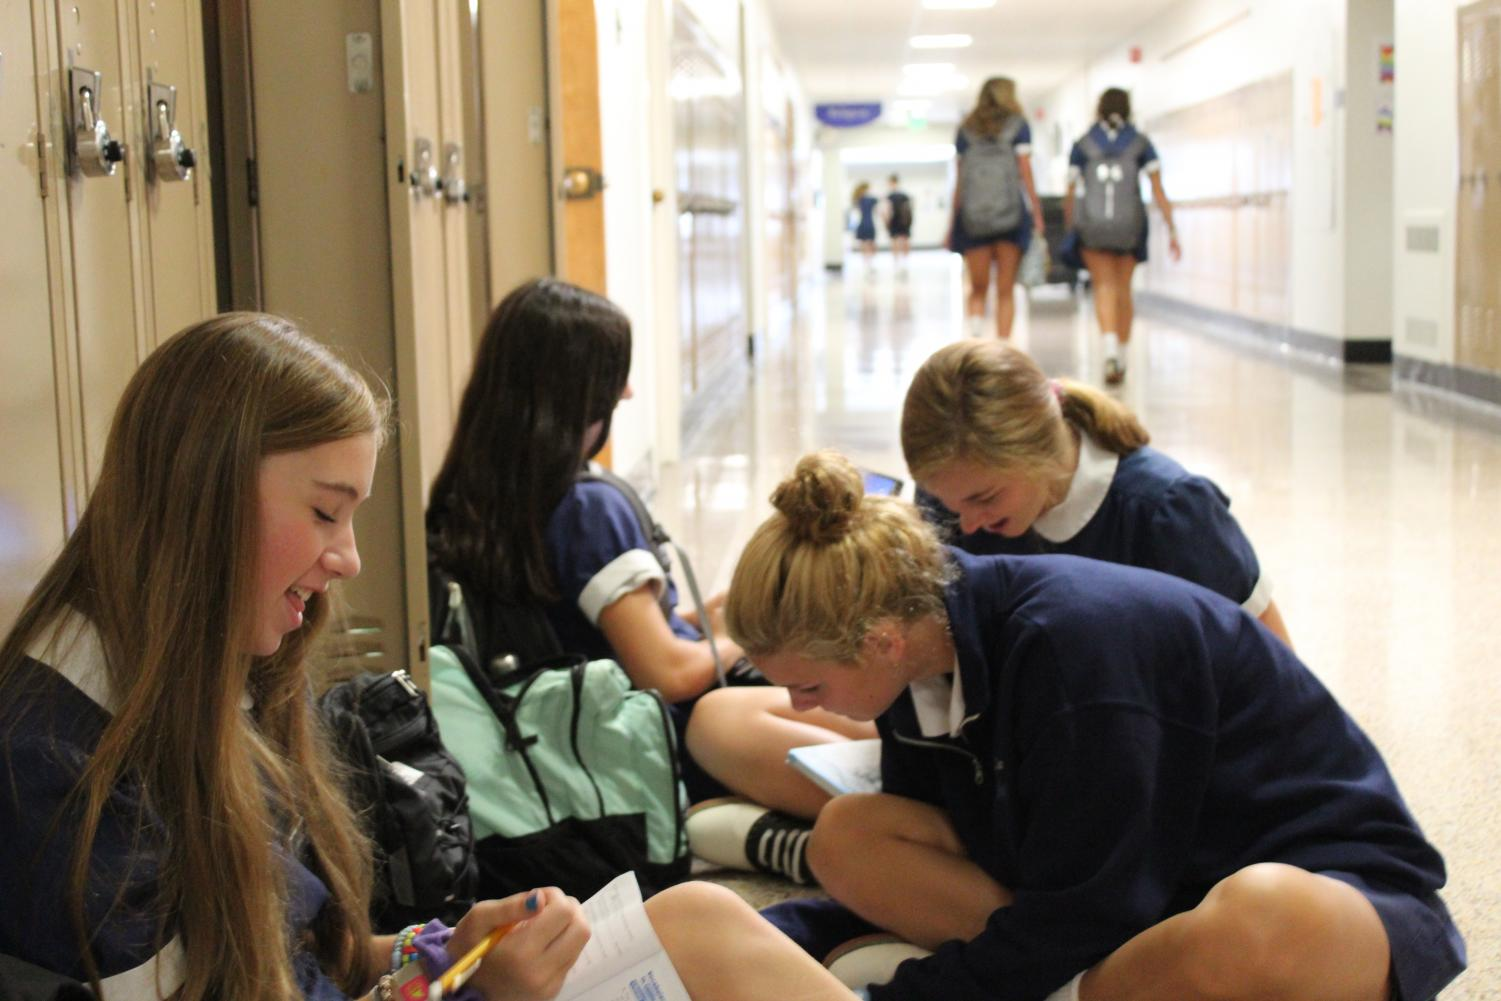 Members of the Class of 2022 work on their homework in the Science wing.